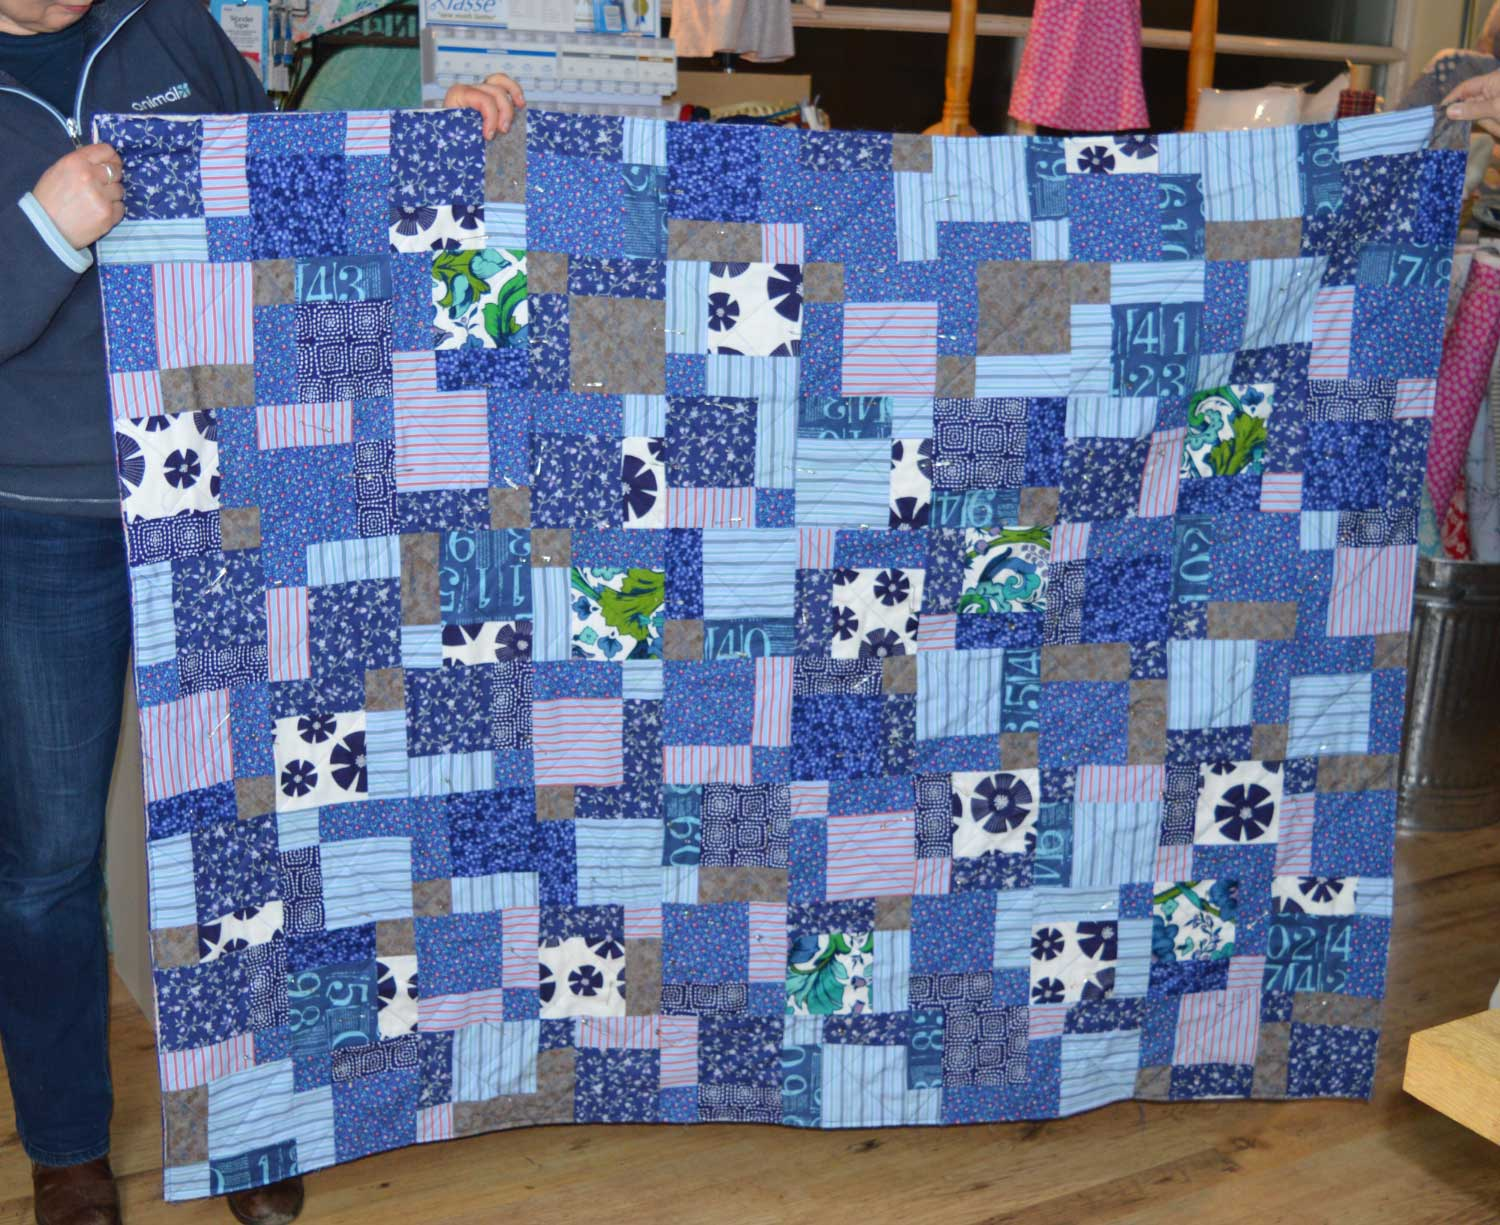 Sewn at Holm Sown: Customer Nine Patch Quilt - Memory Quilt | Holm Sown